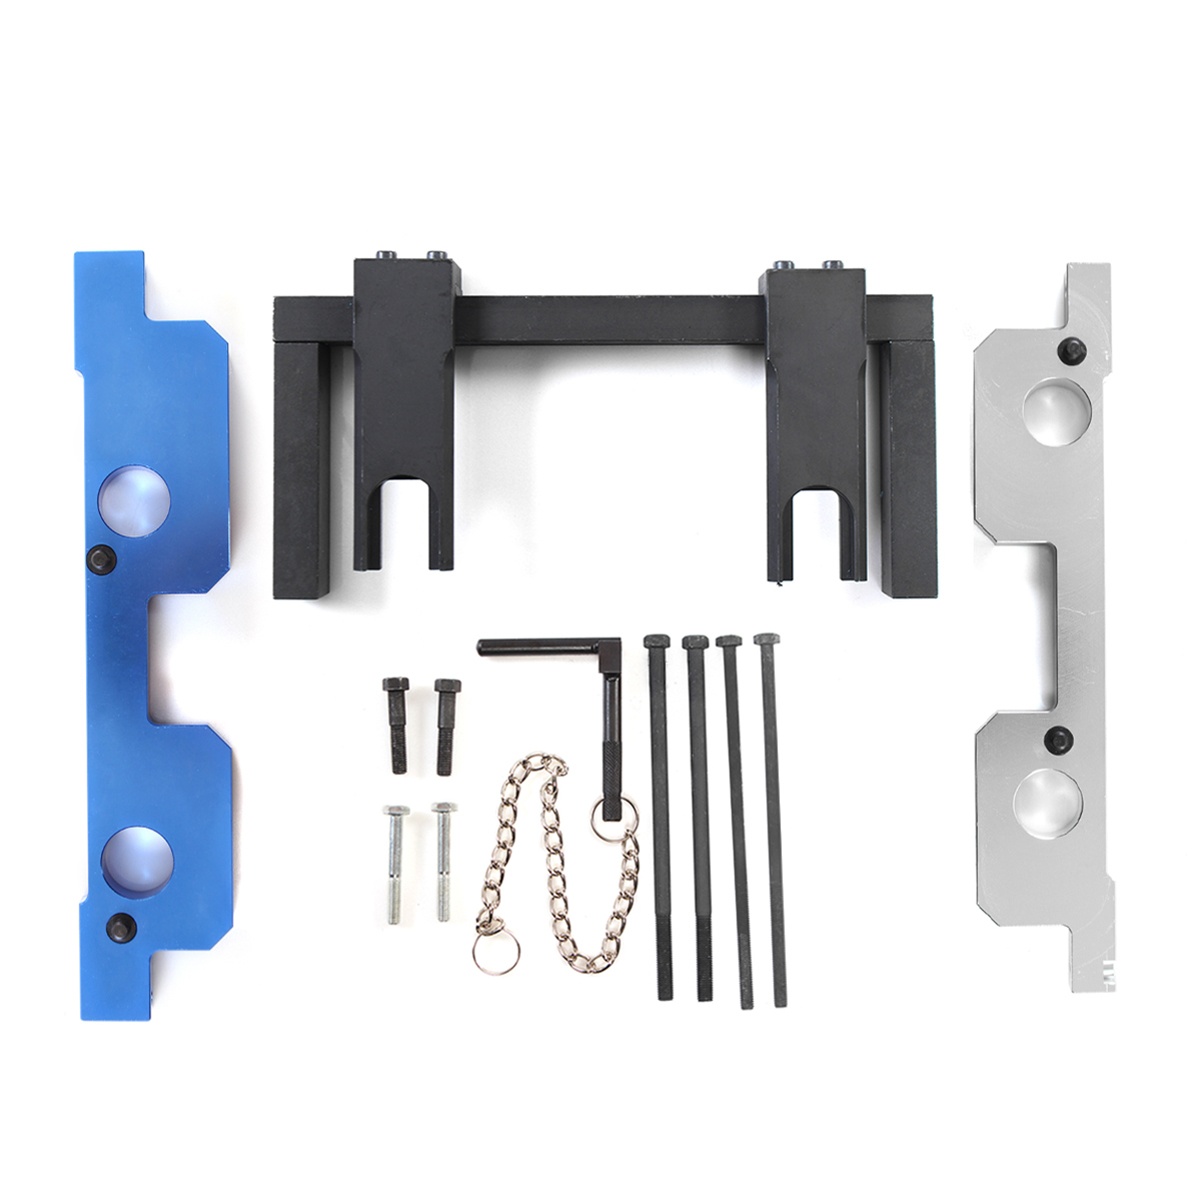 Engine Timing Belt Camshaft Alignment Locking Tools Kit For Bmw 328i N51 N52 N53 N54 In Hand Tool Sets From On Alibaba Group